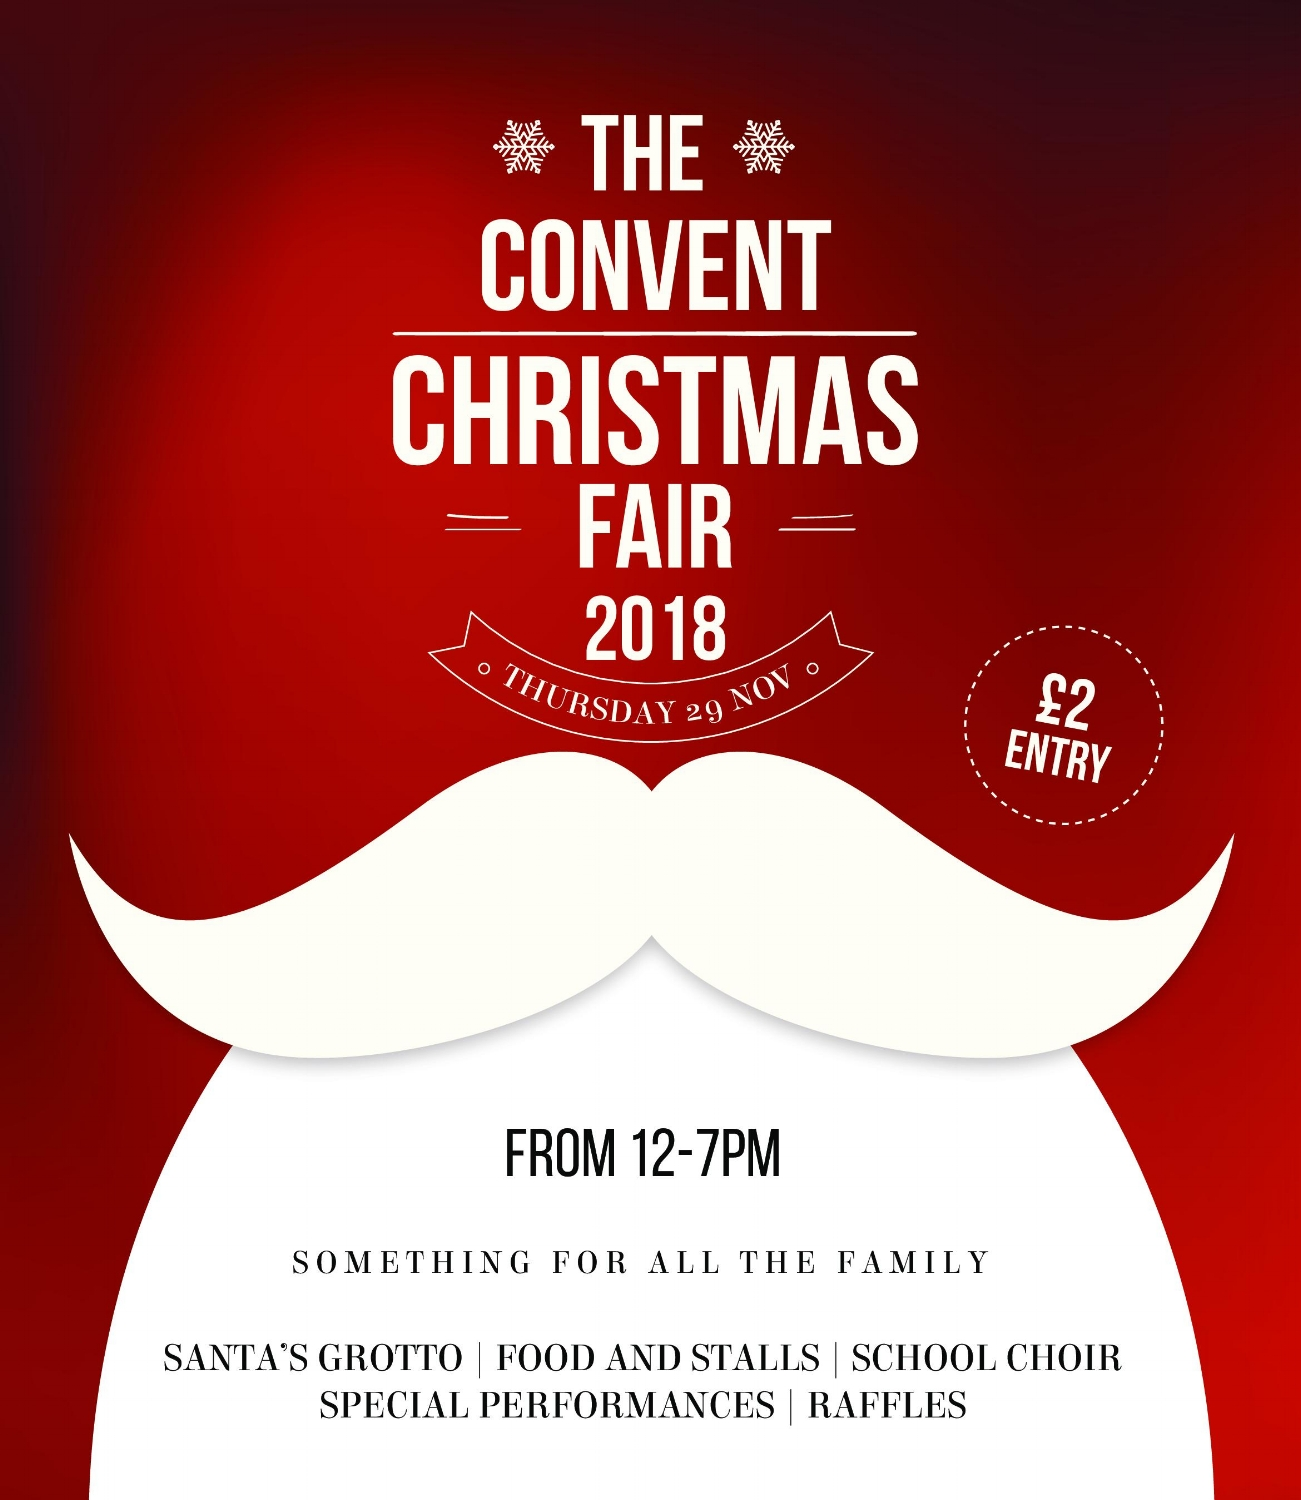 Governor's Residence, 12.00-19.00 - Stacks of stalls selling festive goodies. Tickets, £2. Information from The Convent reception.